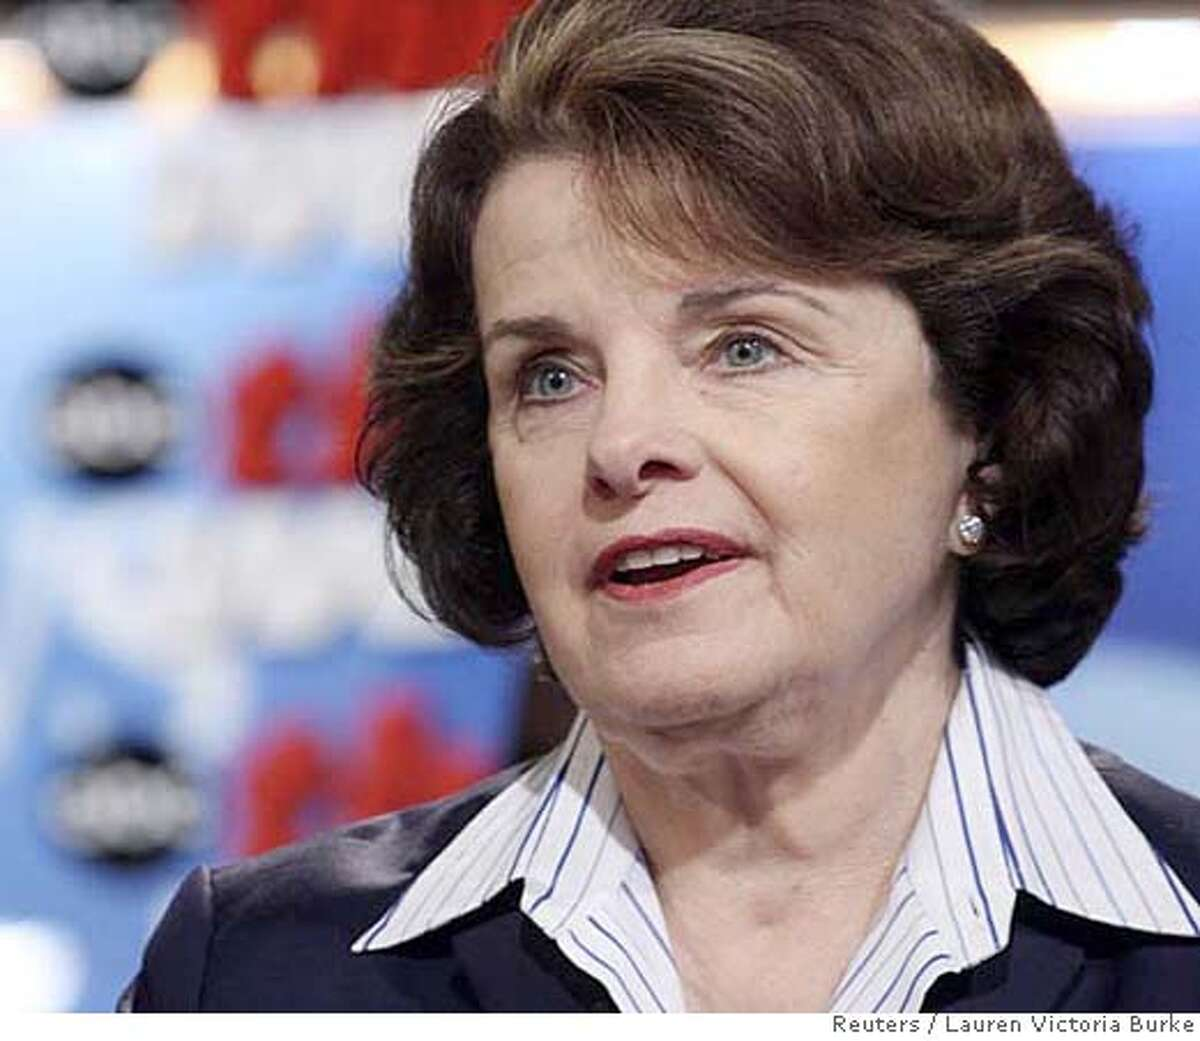 """U.S. Senator Dianne Feinstein (D-CA), speaks about the California wildfires on ABC News' """"This Week"""" in Washington, October 28, 2007. REUTERS/Lauren Victoria Burke/ABC NEWS//Handout (UNITED STATES). EDITORIAL USE ONLY. NOT FOR SALE FOR MARKETING OR ADVERTISING CAMPAIGNS. NO ARCHIVES. NO SALES. EUO NARCH NOSALES"""